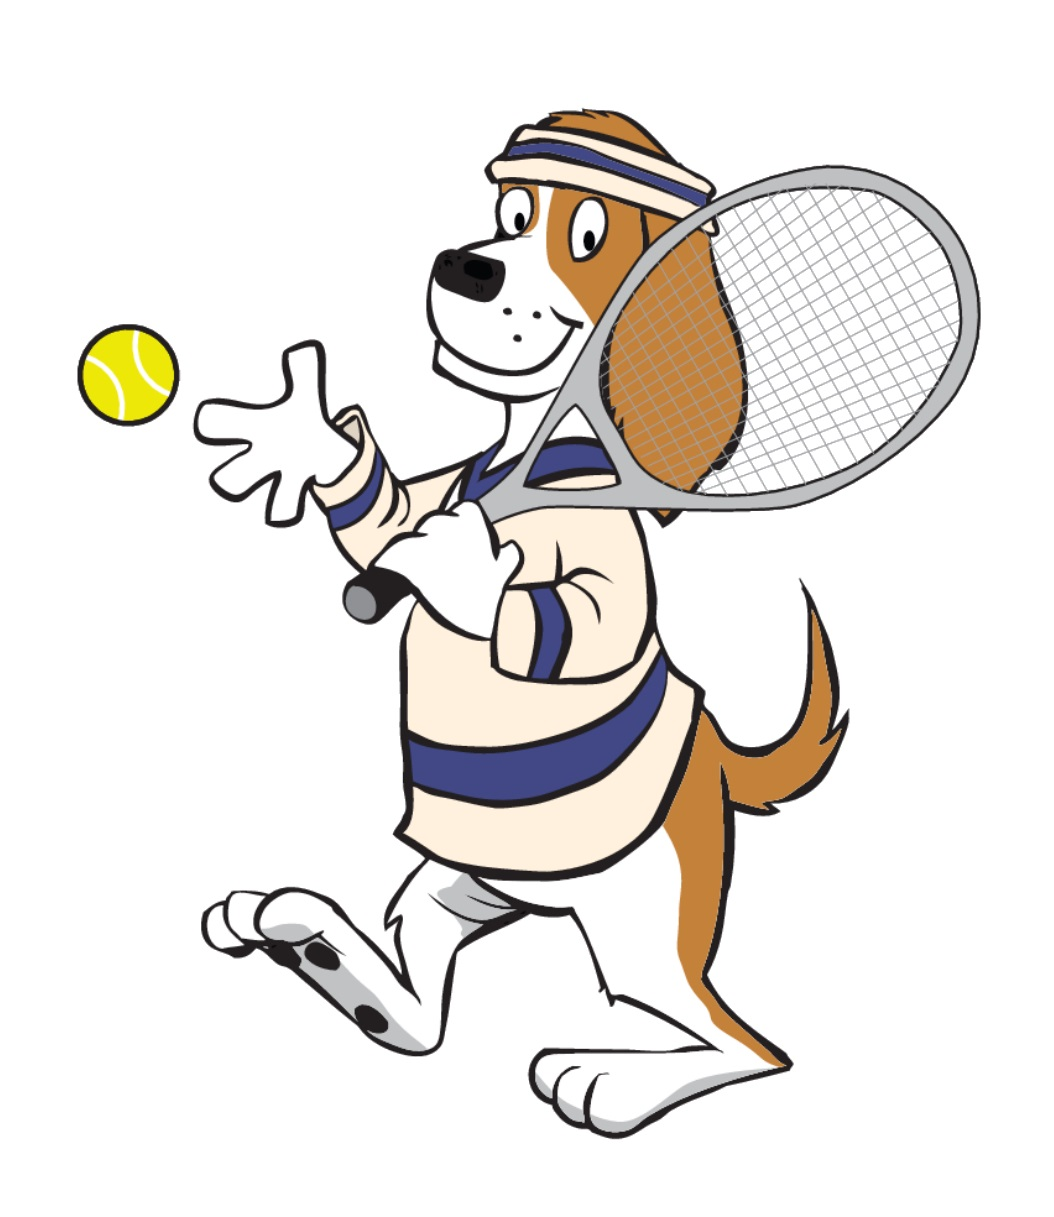 Tennis craft papers free craft downloads tennis craft papers jeuxipadfo Choice Image